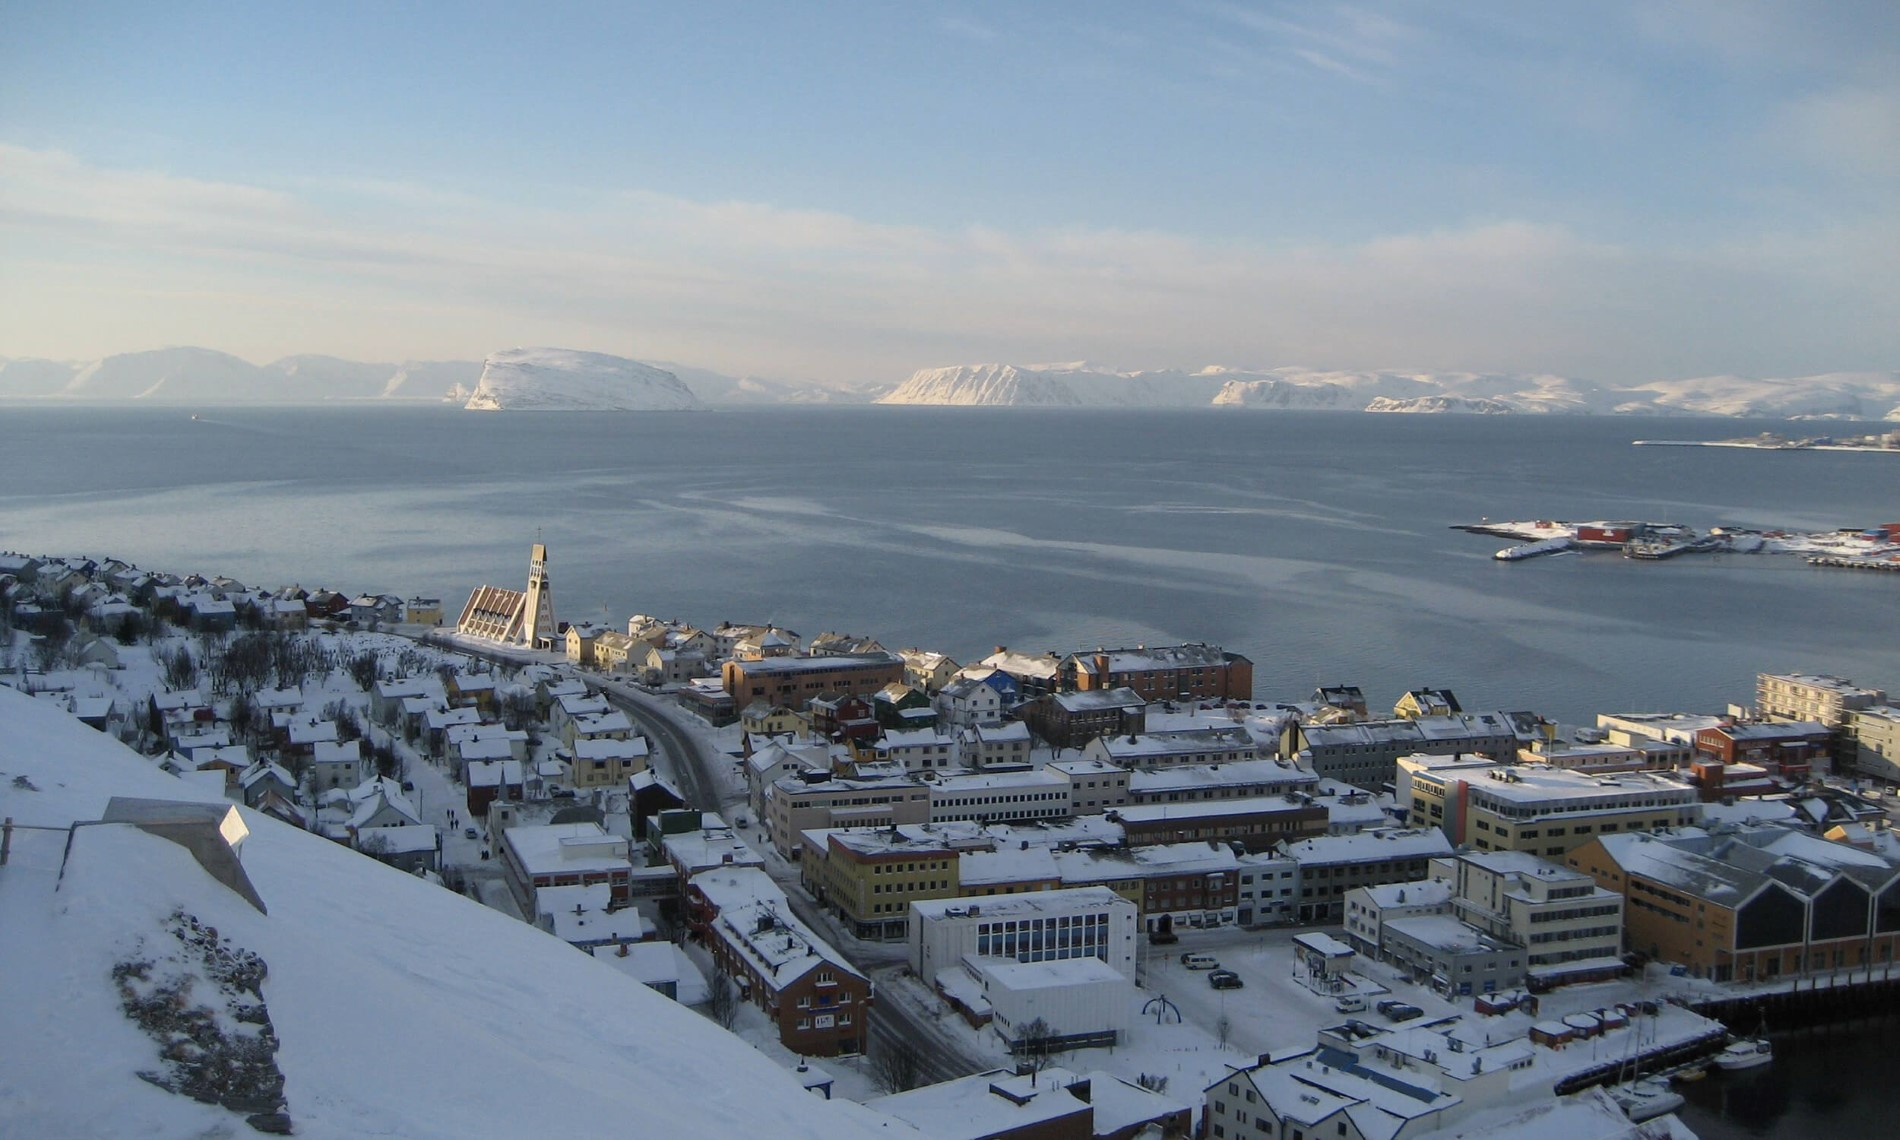 8g mountain hike in hammerfest_12_img_0031 2.jpg